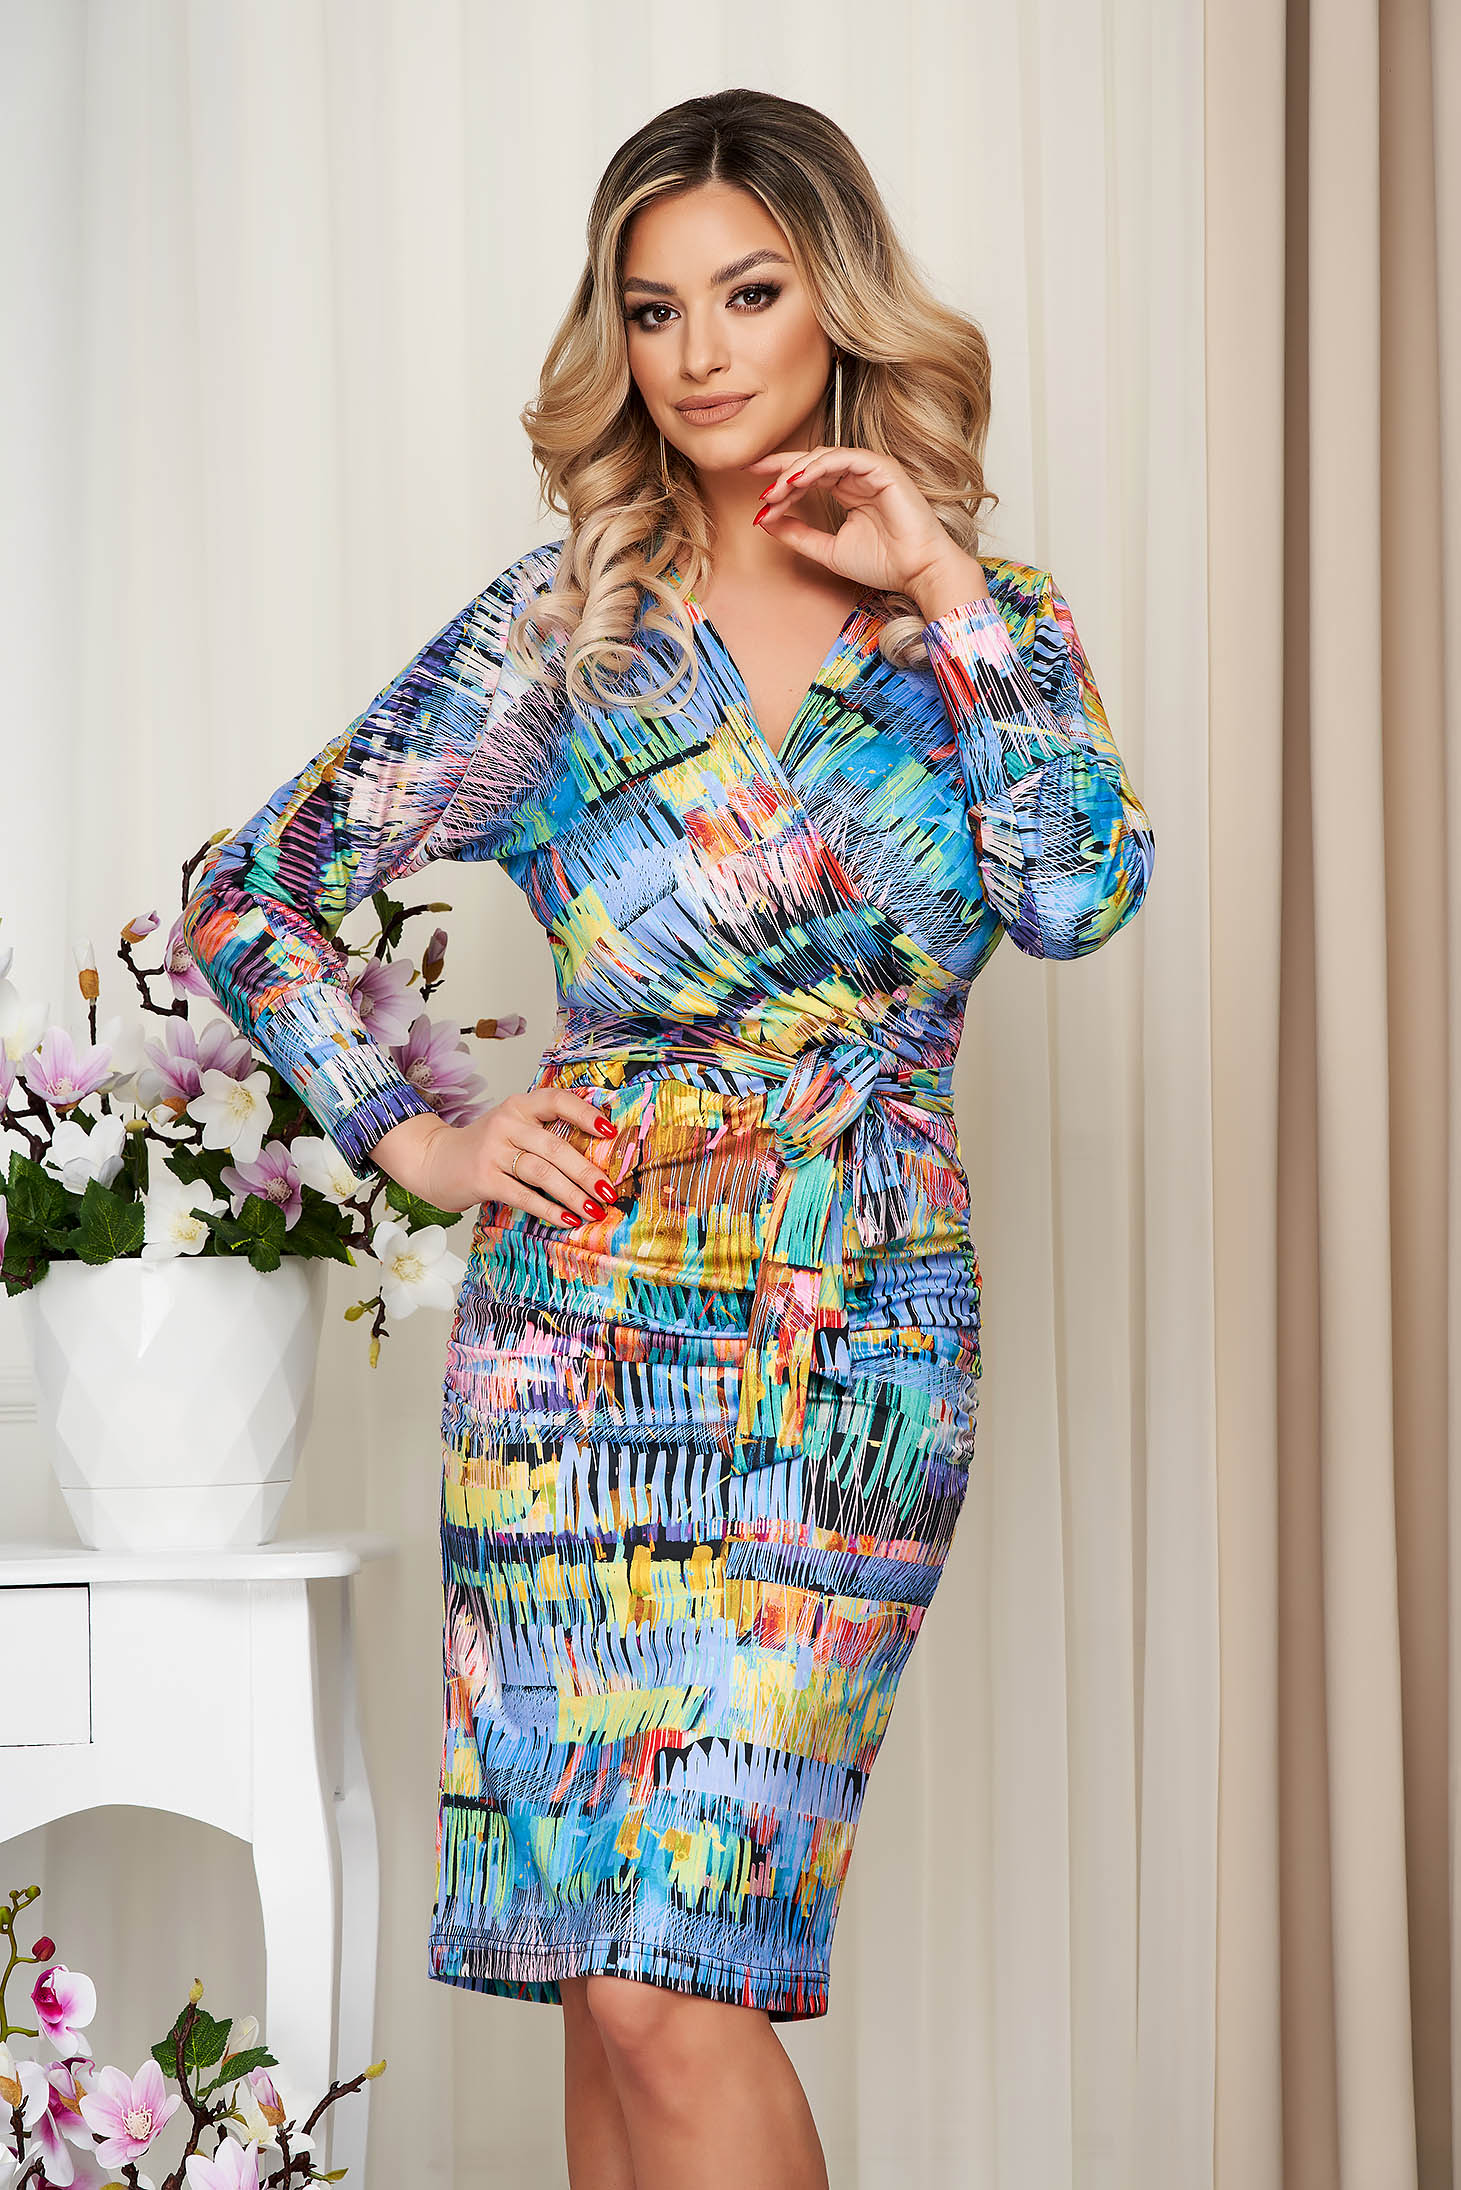 Dress pencil from elastic and fine fabric wrap over front with graphic details